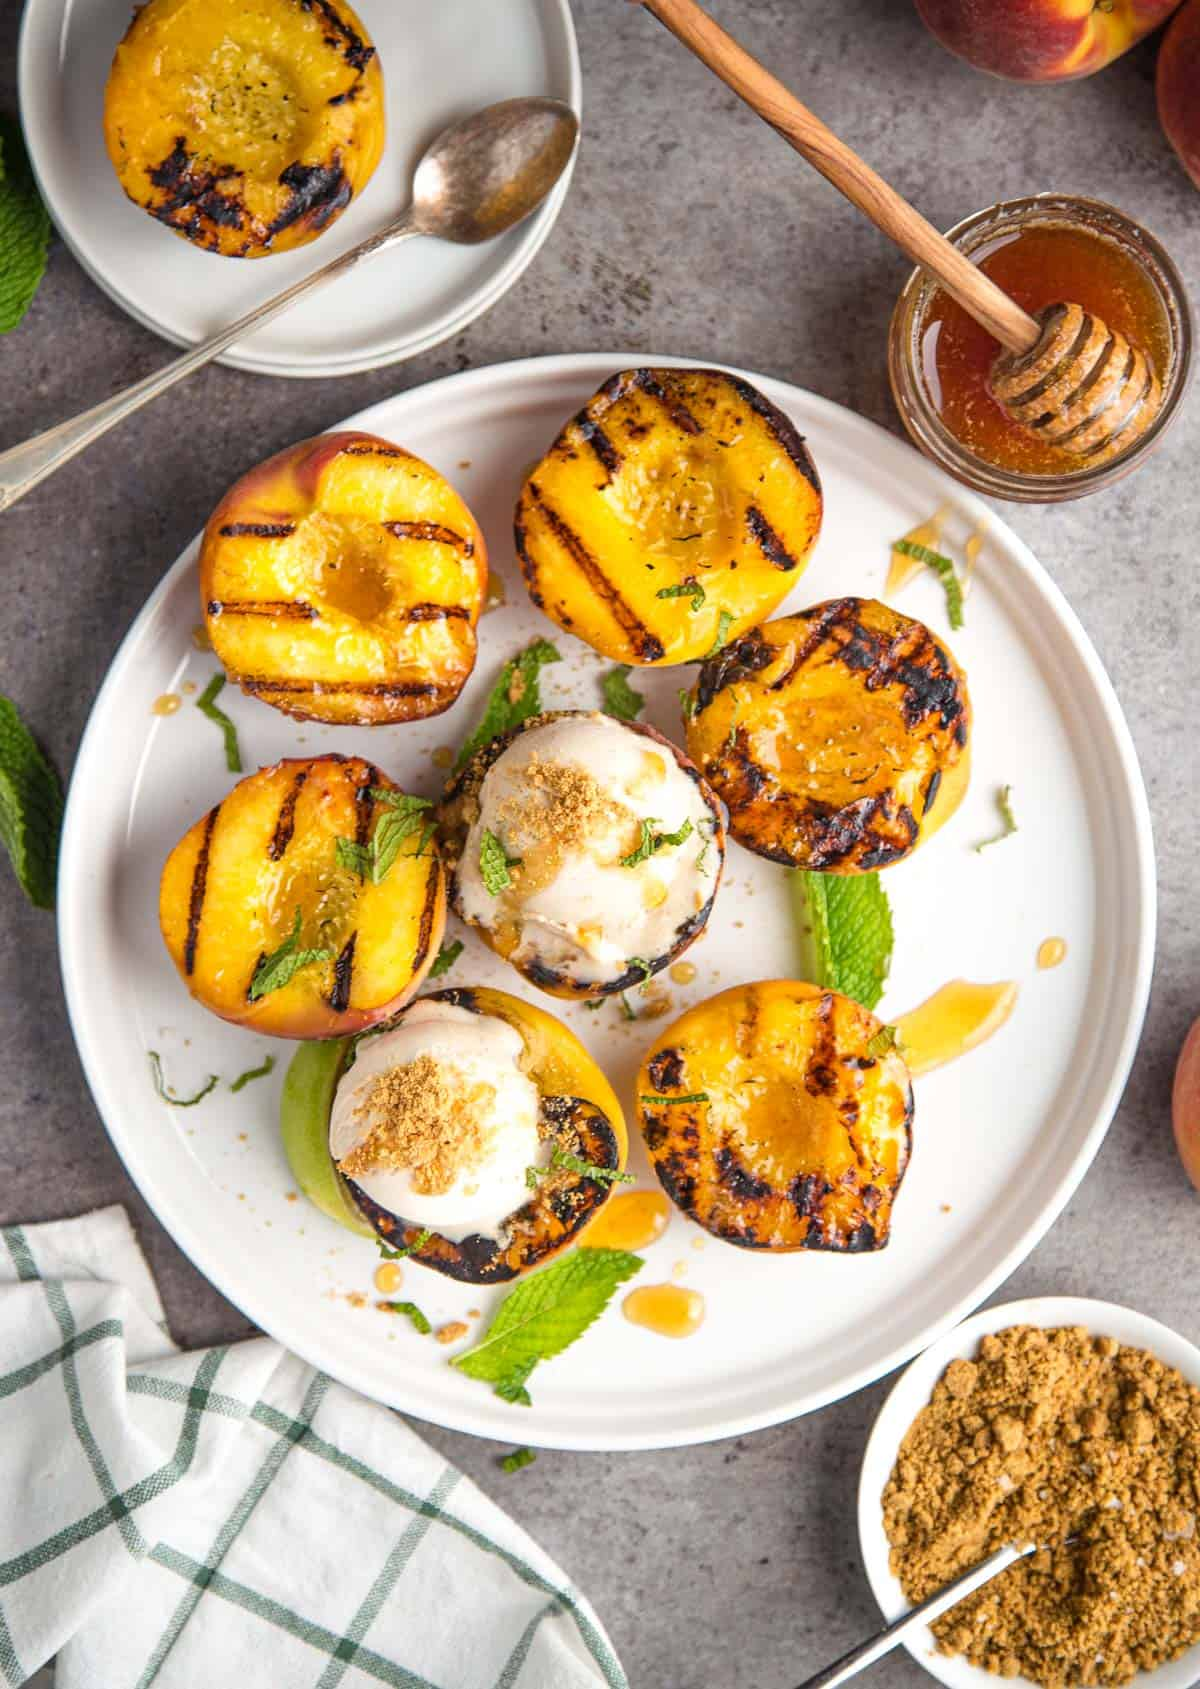 A platter of grilled peaches topped with ice cream and smoked honey